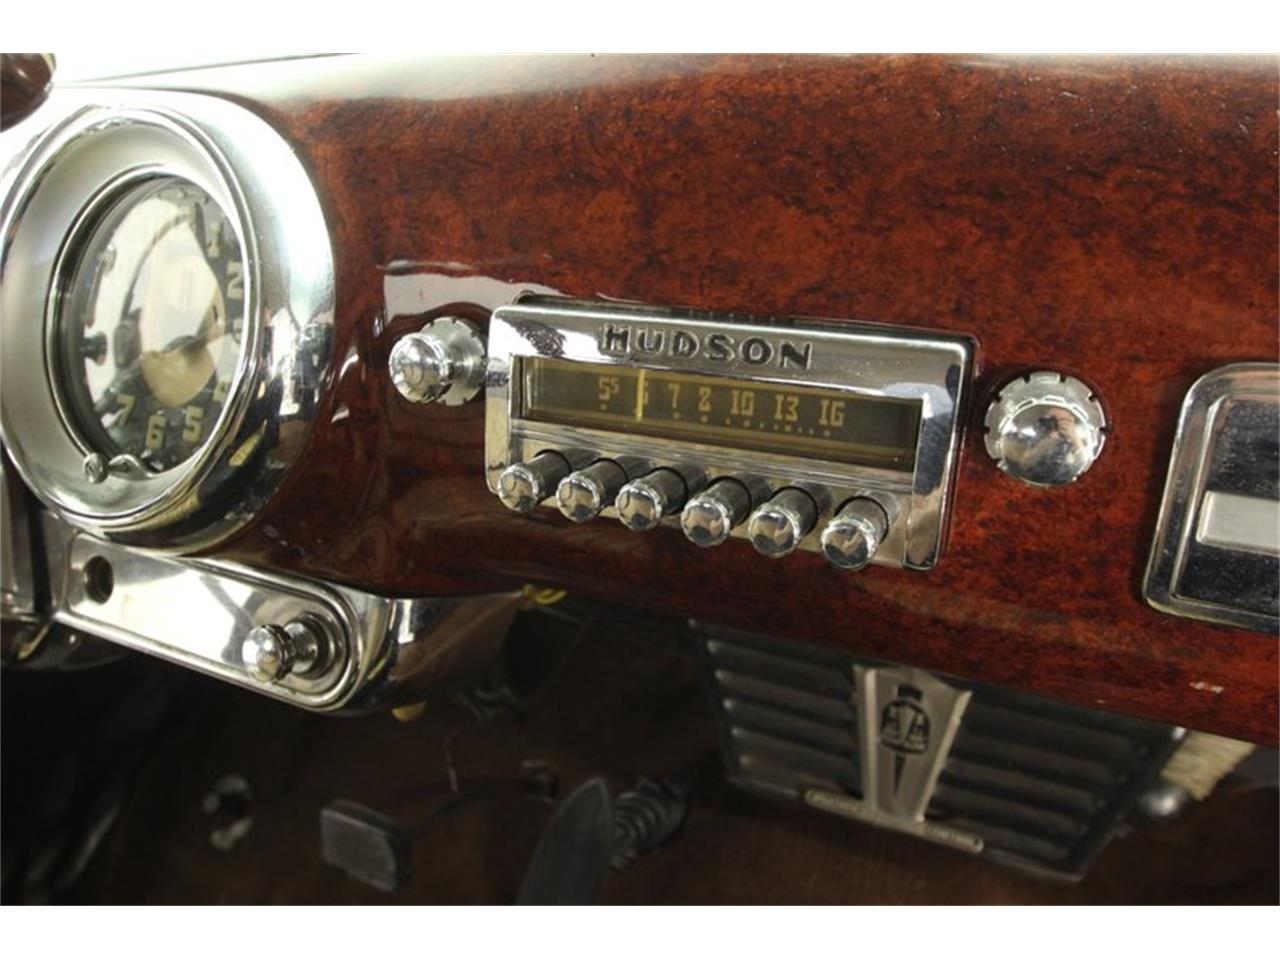 Large Picture of '51 Hudson Hornet located in Lutz Florida - $24,995.00 Offered by Streetside Classics - Tampa - PRXG